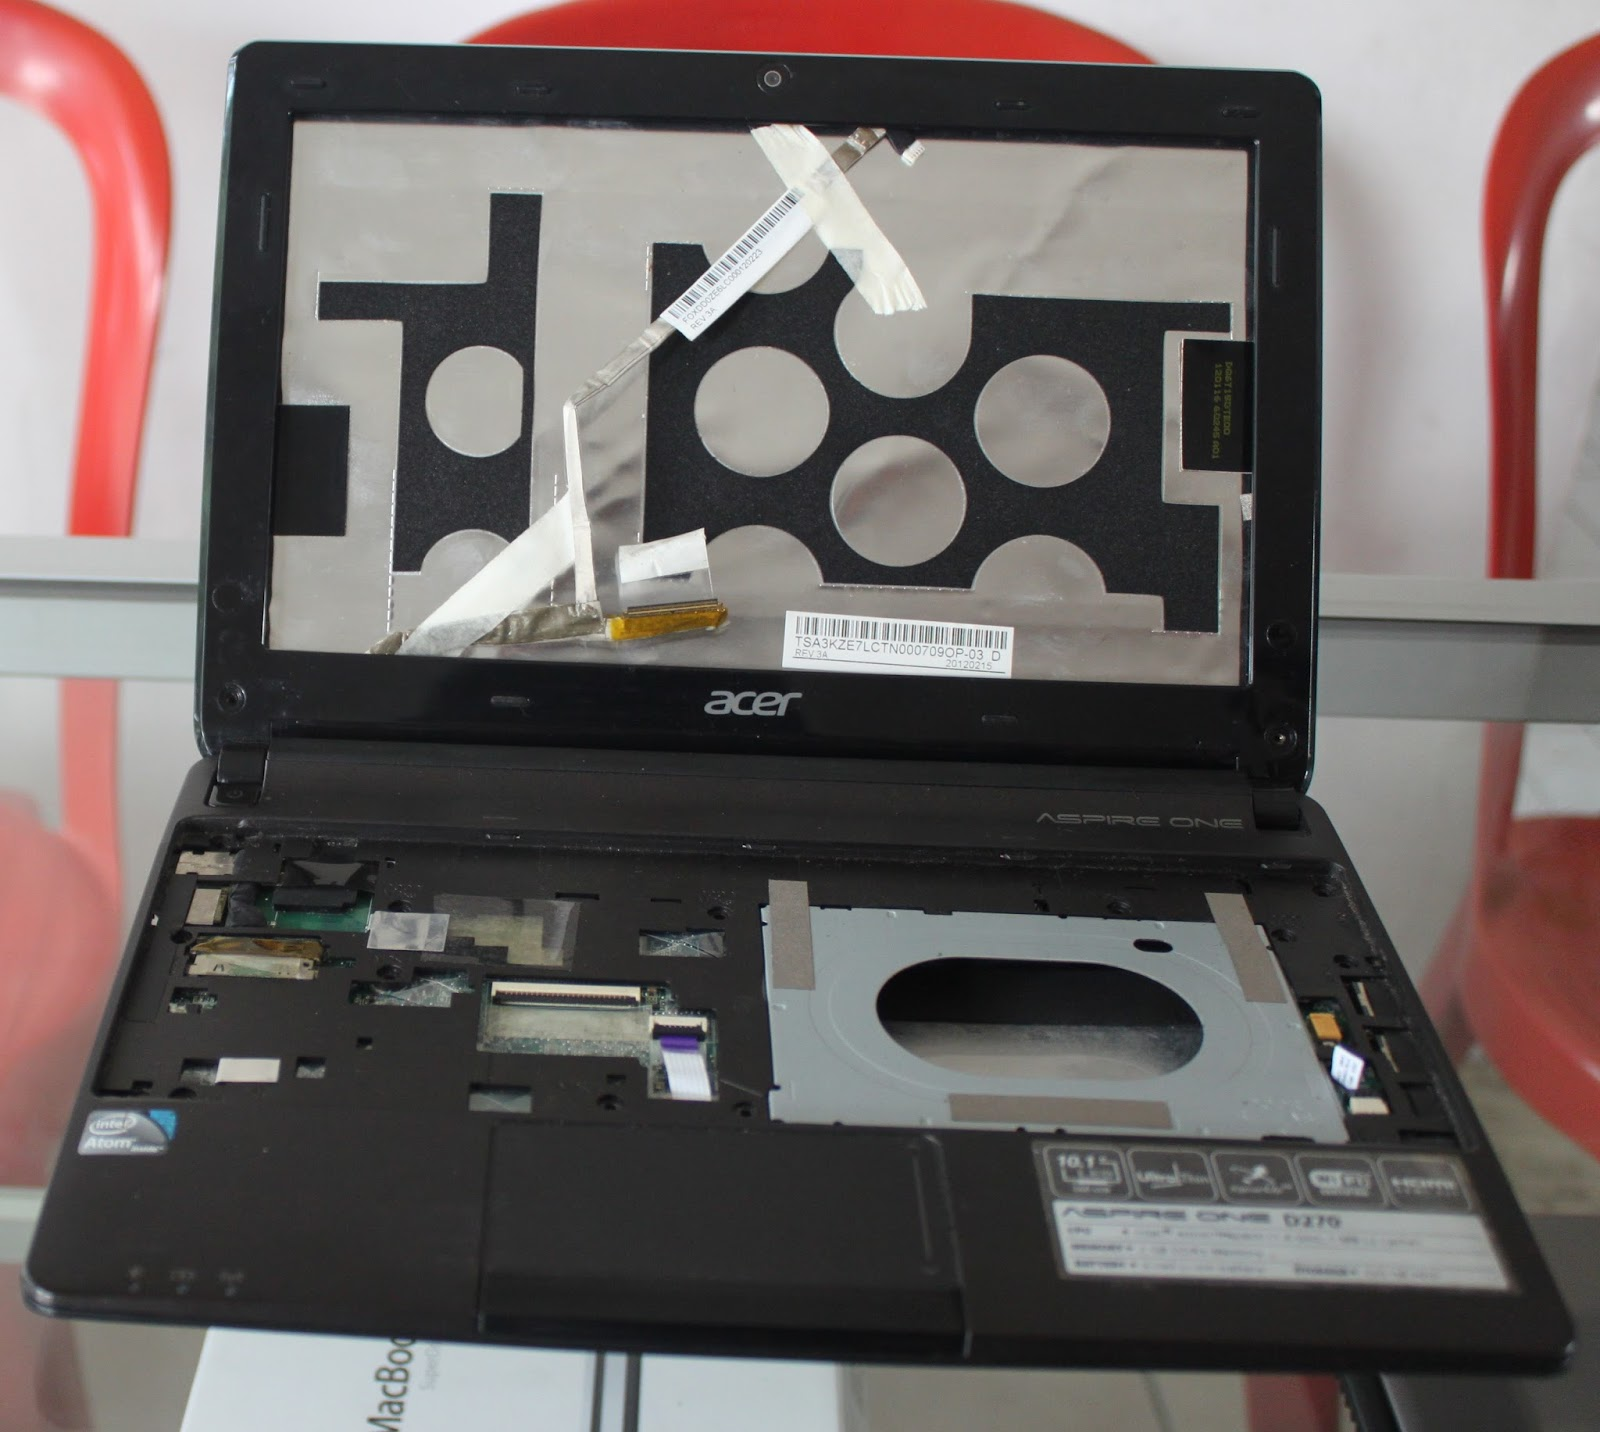 Casing Acer Aspire One 722 Product Reviews Check Engsel Ao722 Jual D270